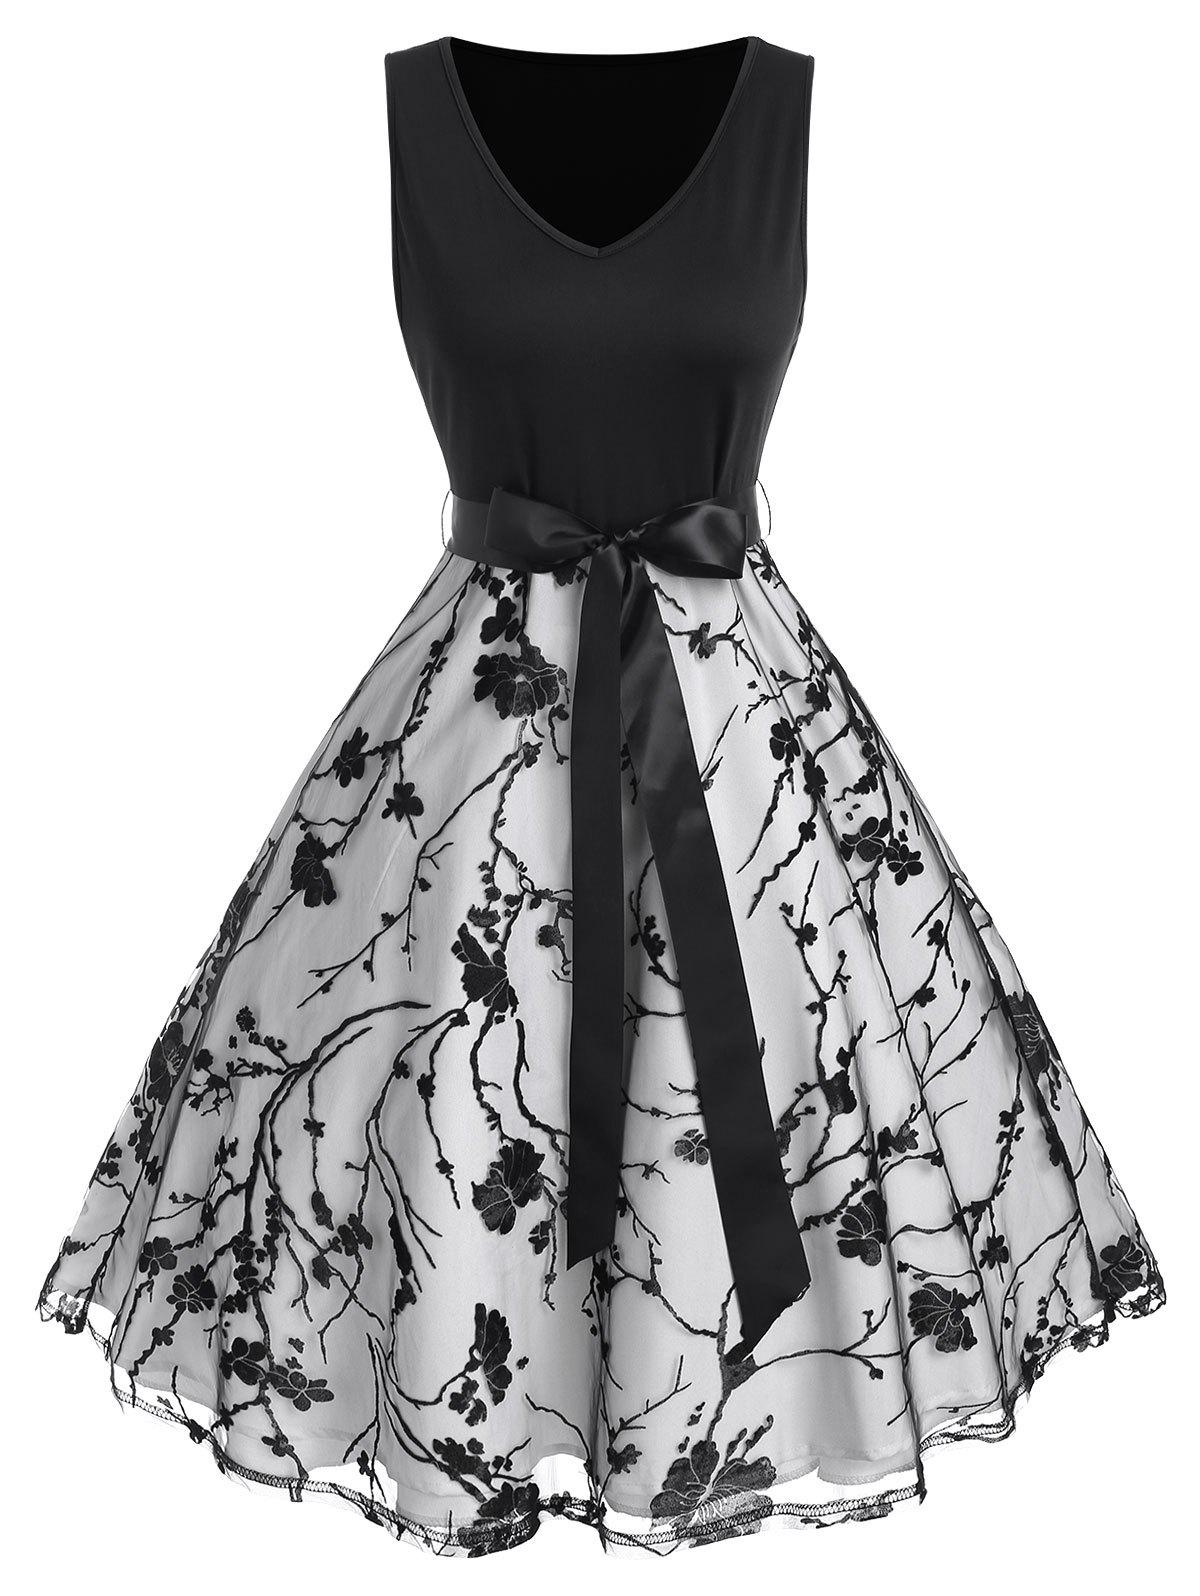 Floral Mesh Ribbon Bowknot A Line Dress - BLACK XL